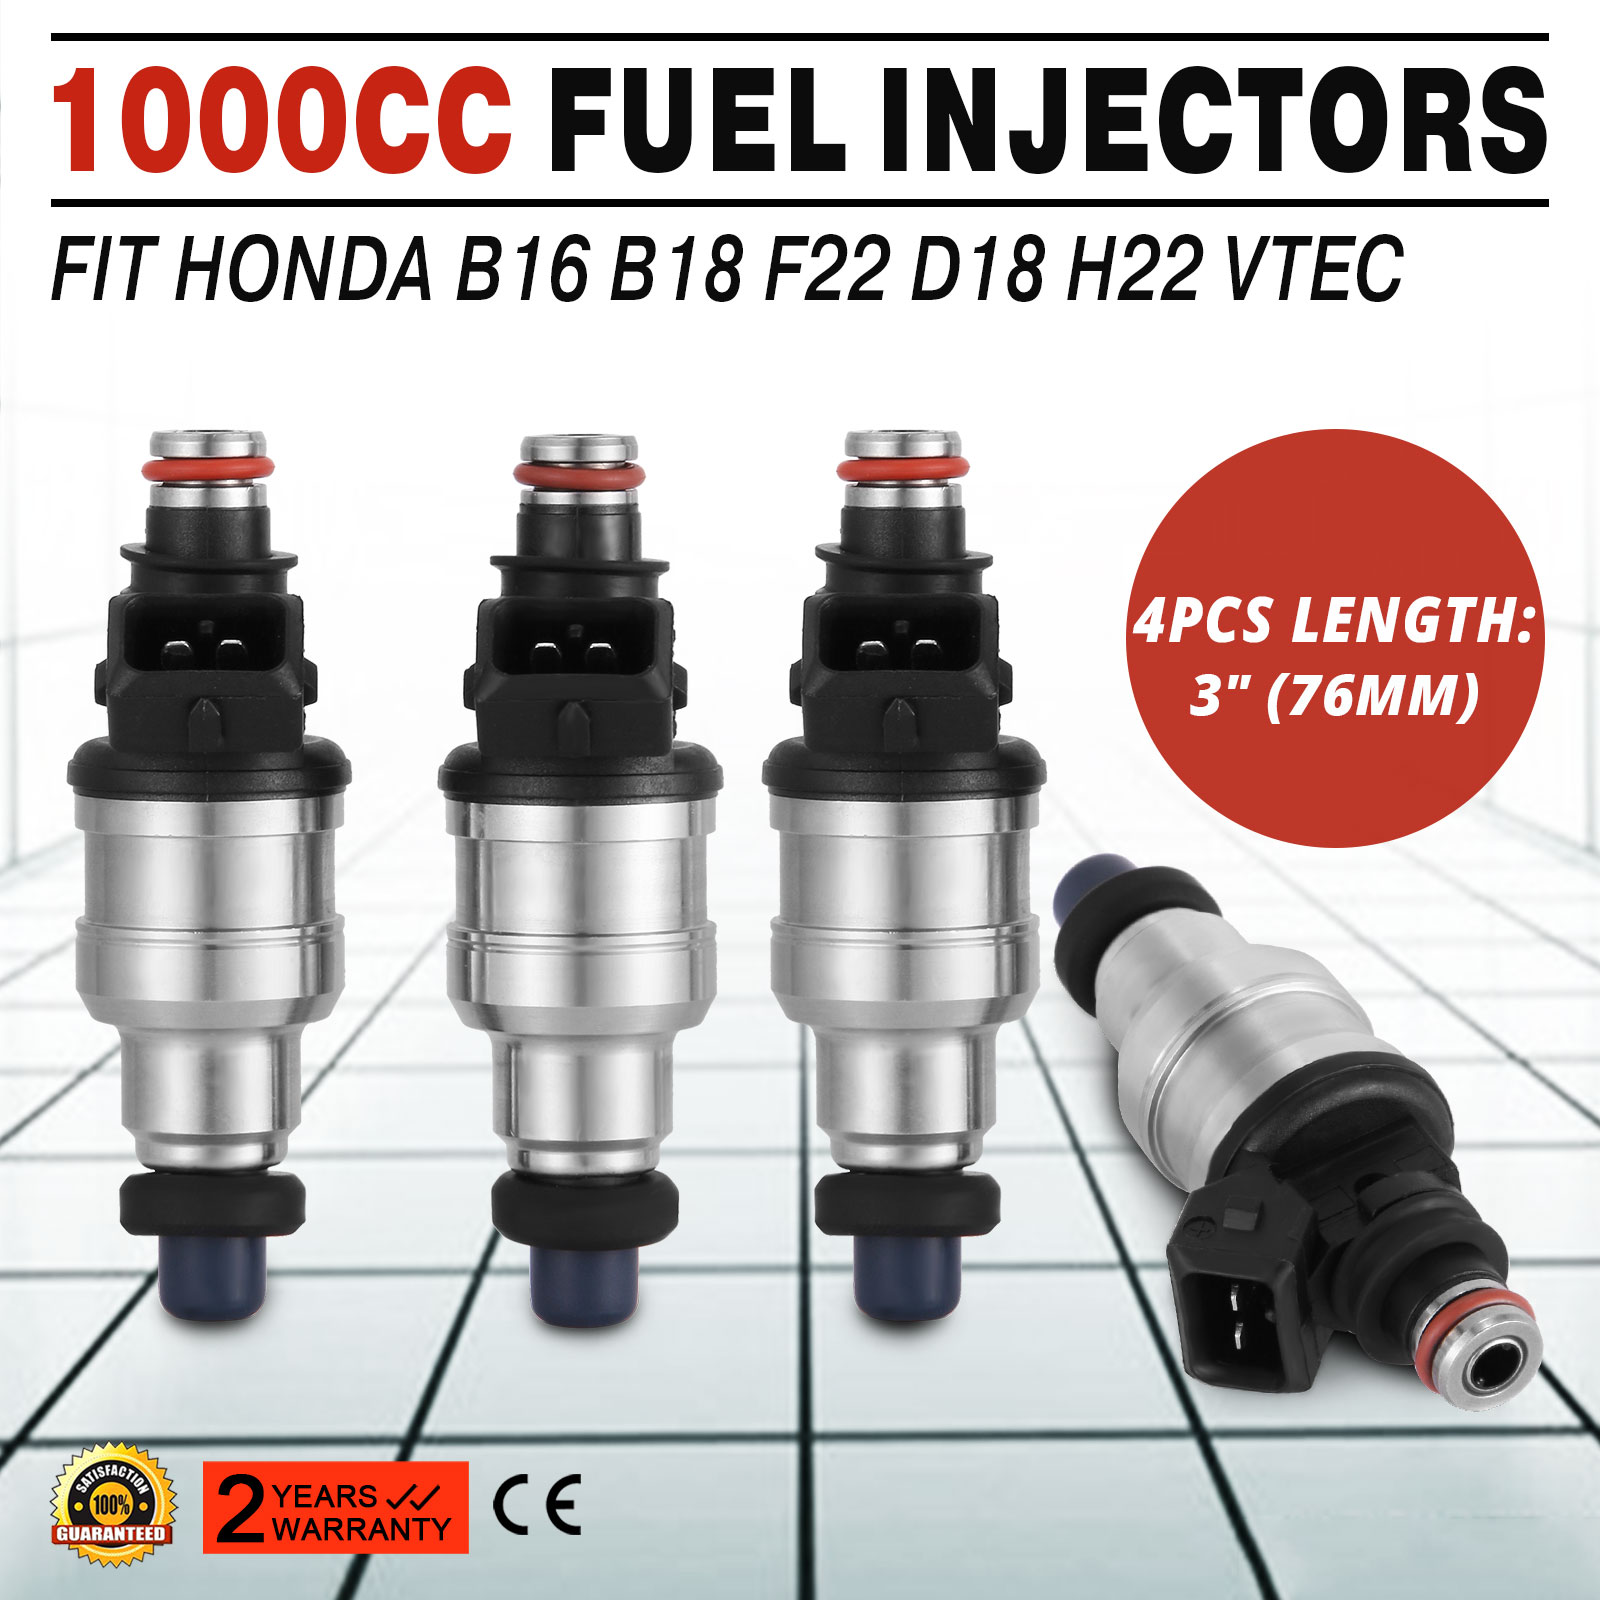 Fuel Injectors 1000cc For Honda B16 B18 B20 D16 D18 F22 H22 H22A VTEC Free Clips